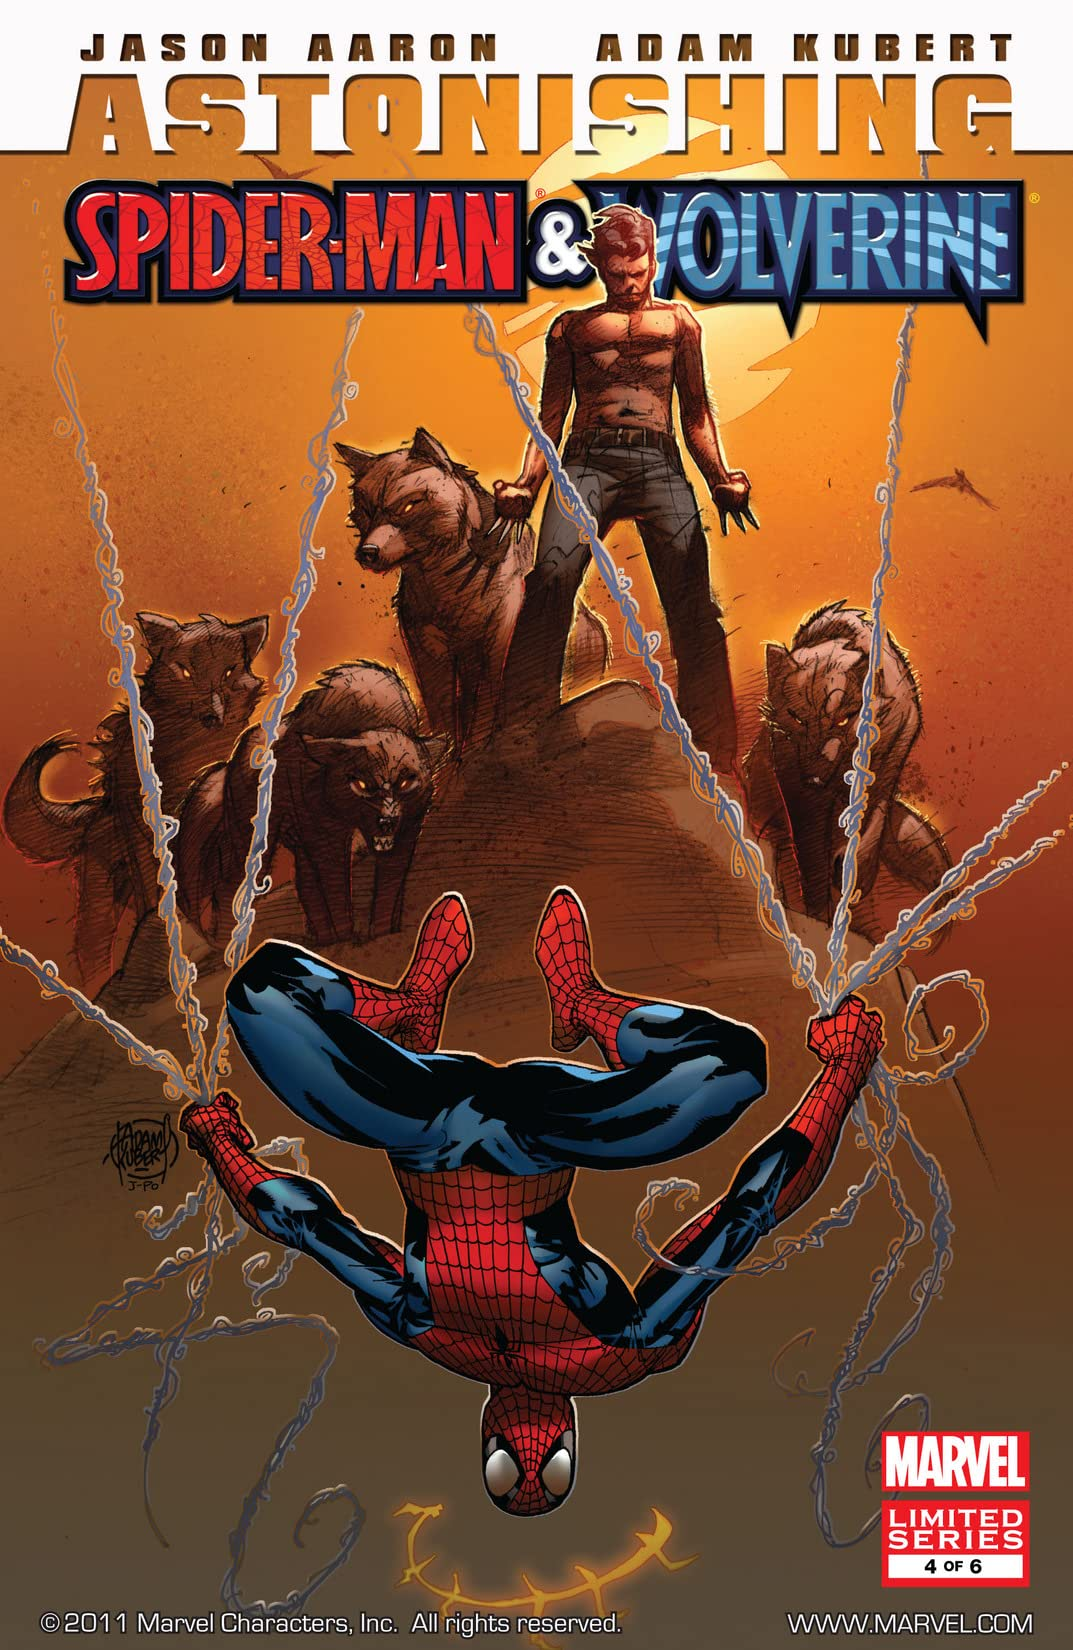 Astonishing Spider-Man & Wolverine #4 (of 6)